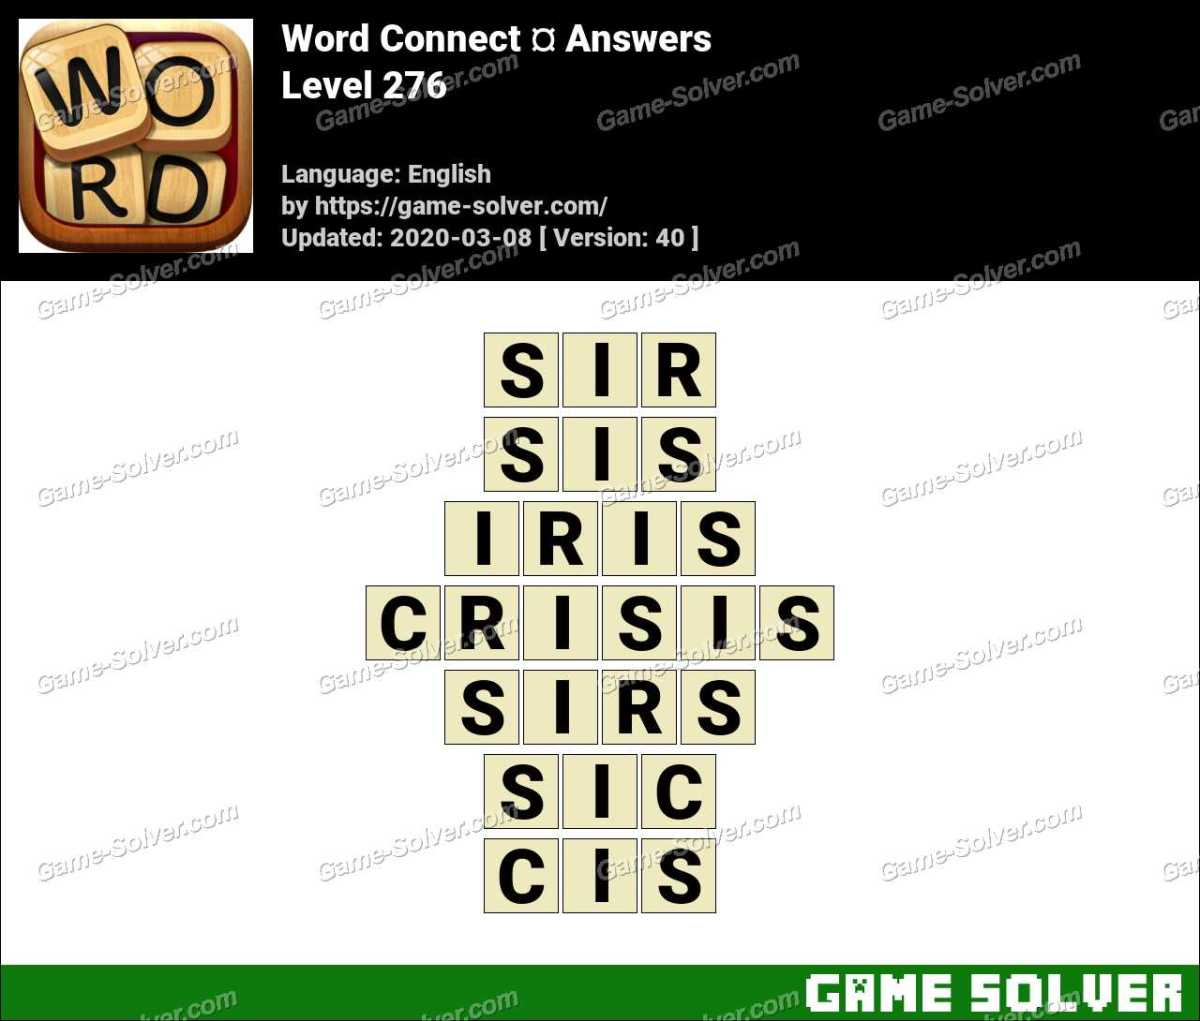 Word Connect Level 276 Answers